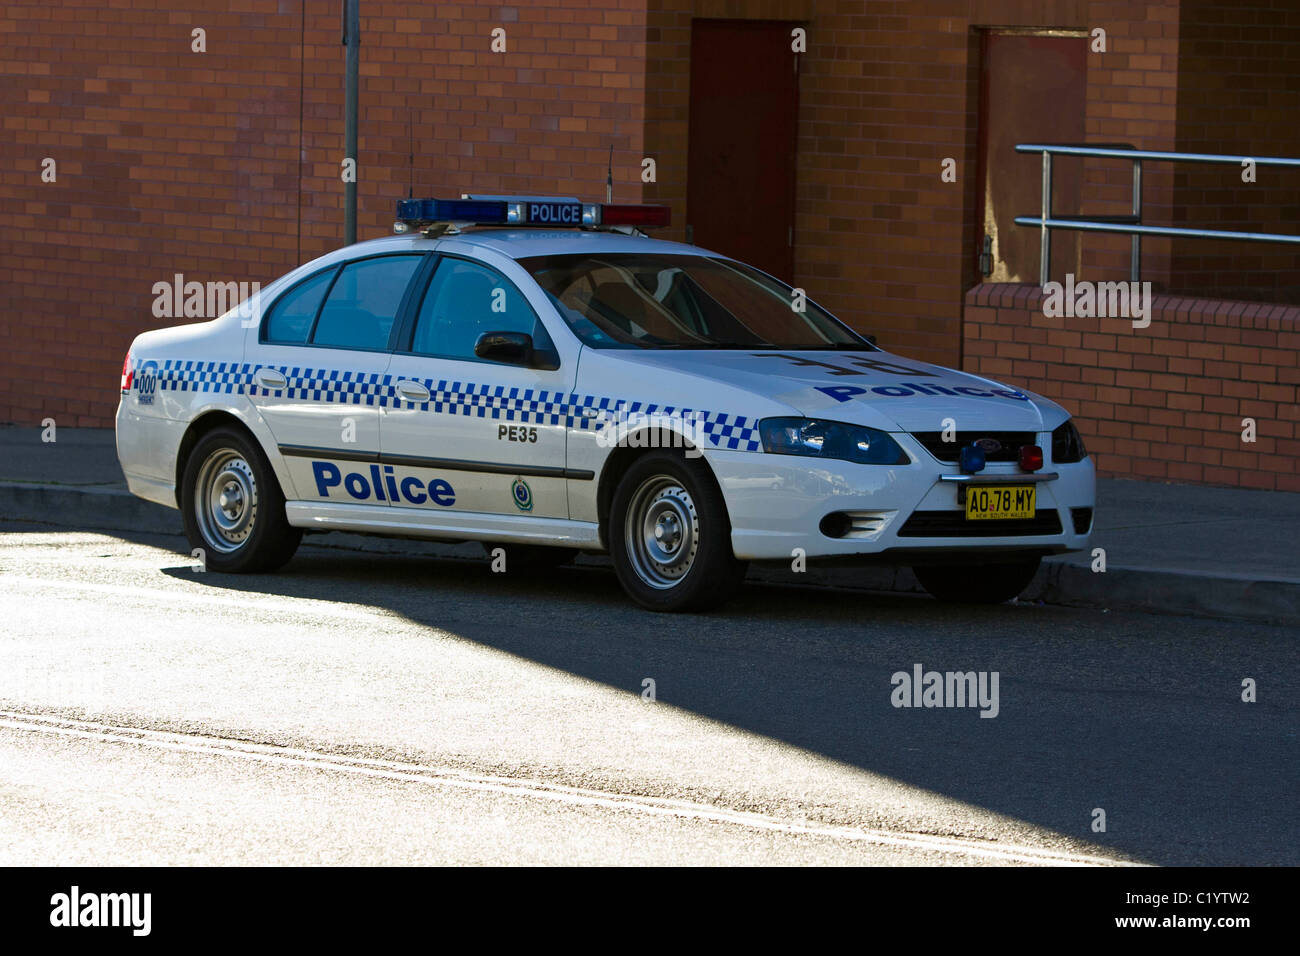 Nsw Police Stock Photos & Nsw Police Stock Images - Alamy